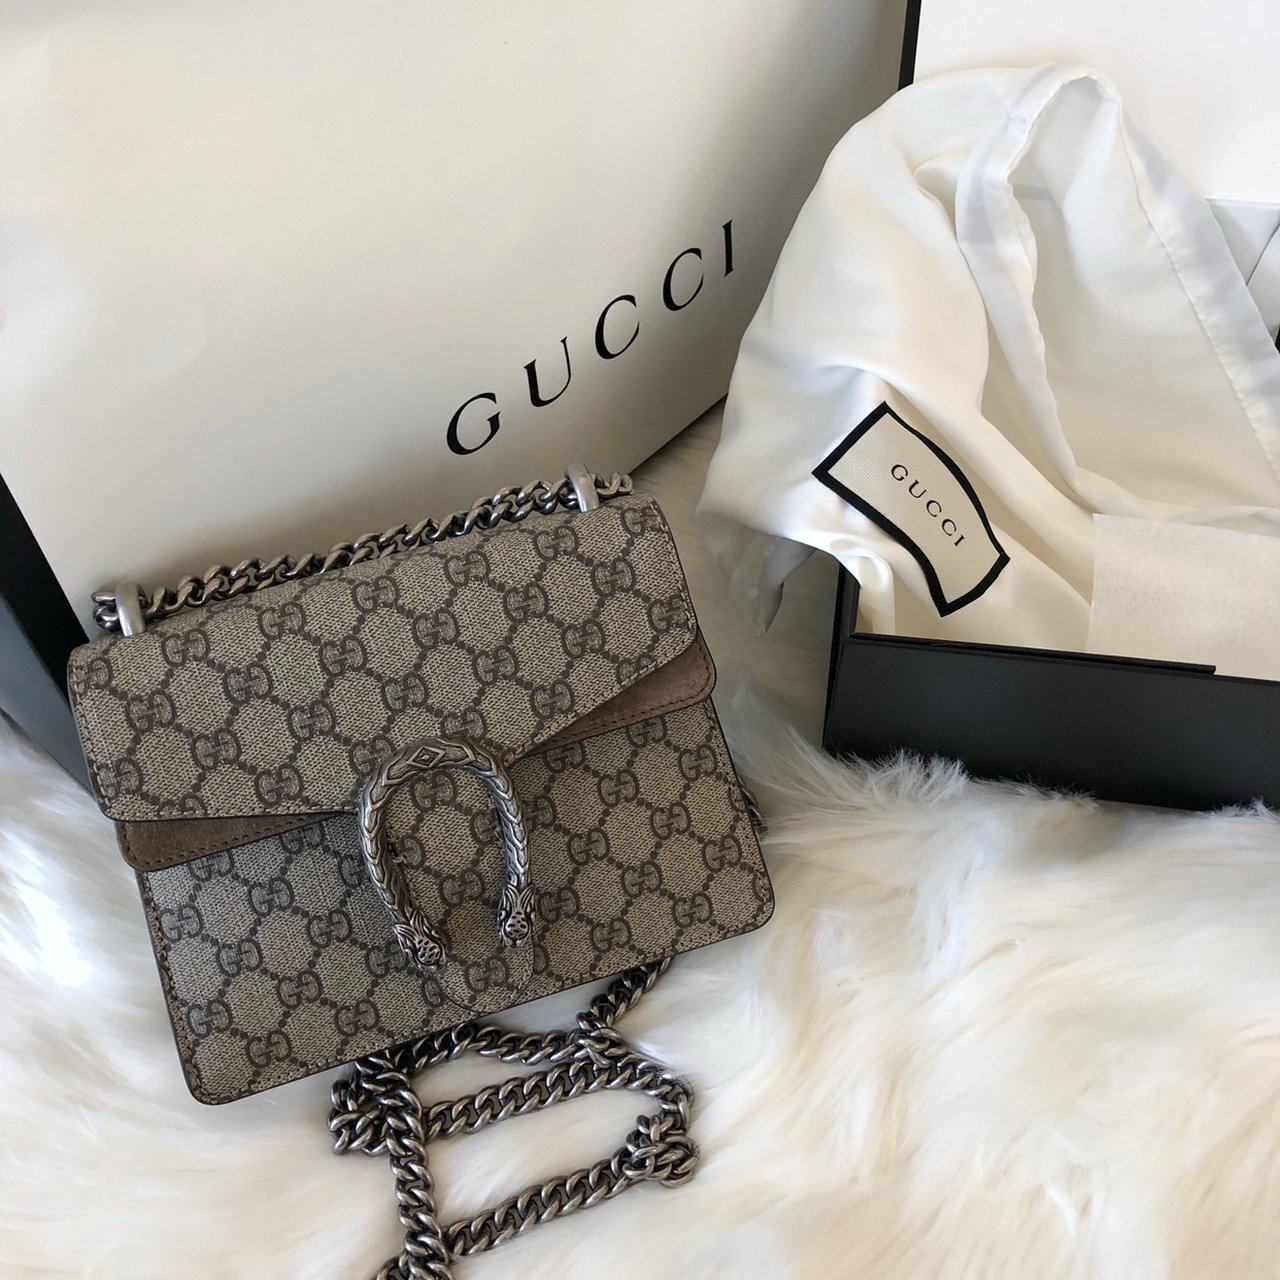 b7fe2758760 Gucci Dionysus GG Supreme mini bag. Excellent condition bag - Depop